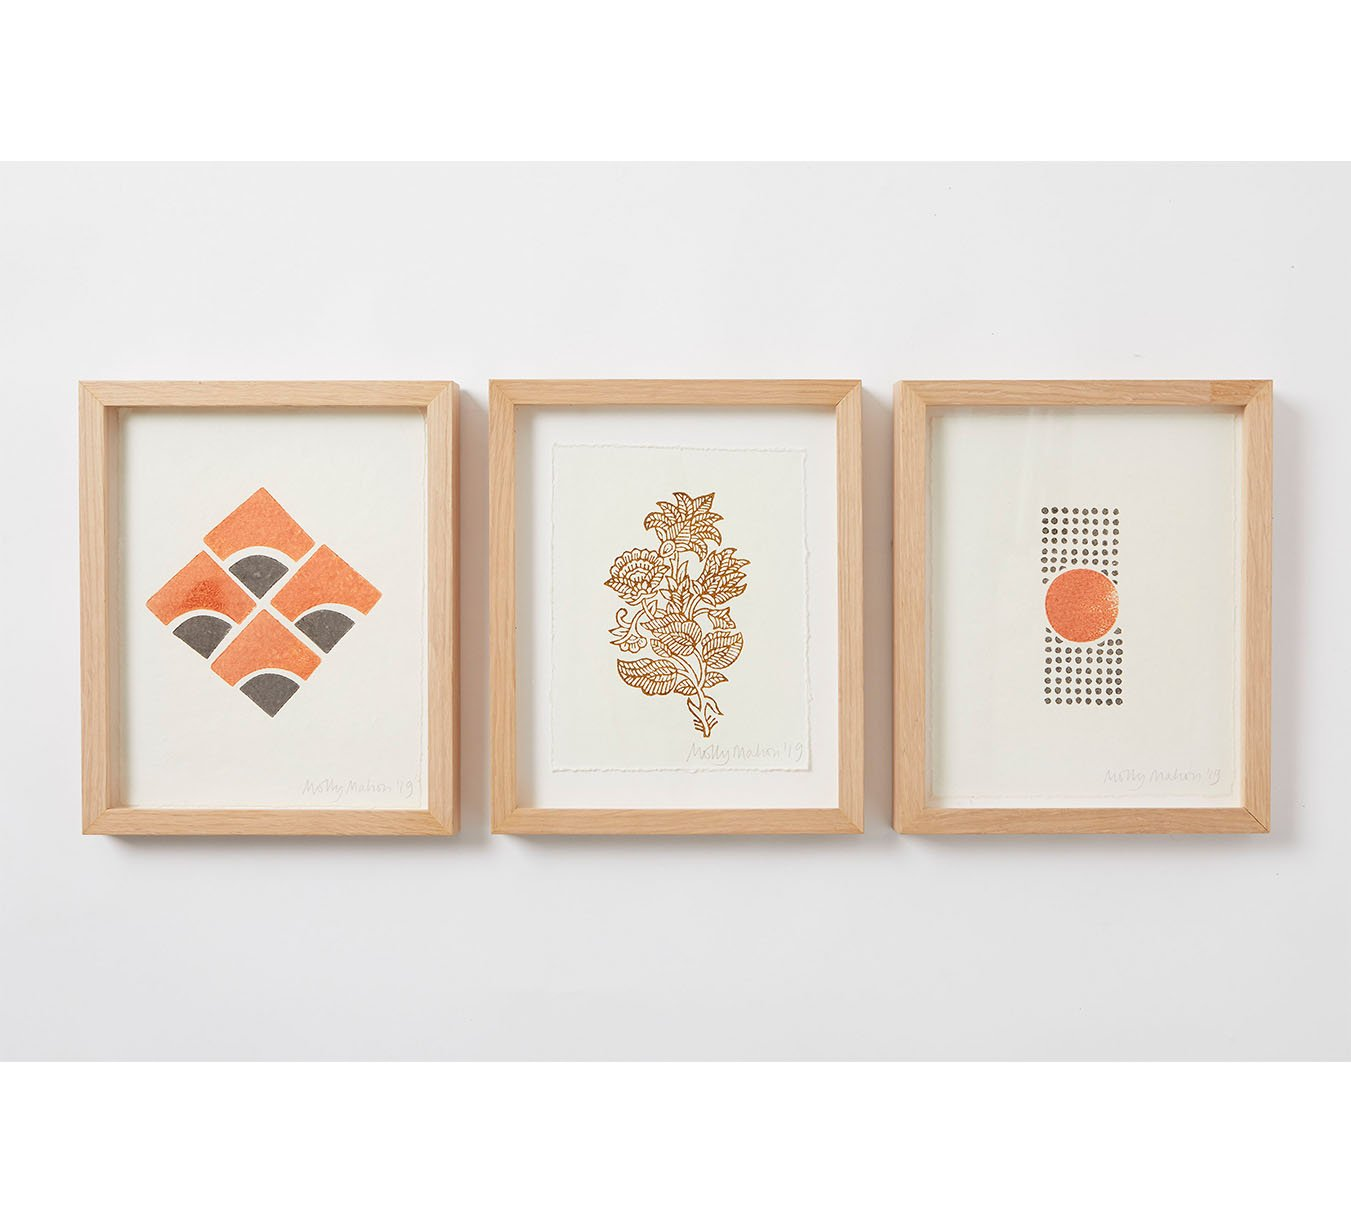 Framed - Cotton Paper Print - Trio 1